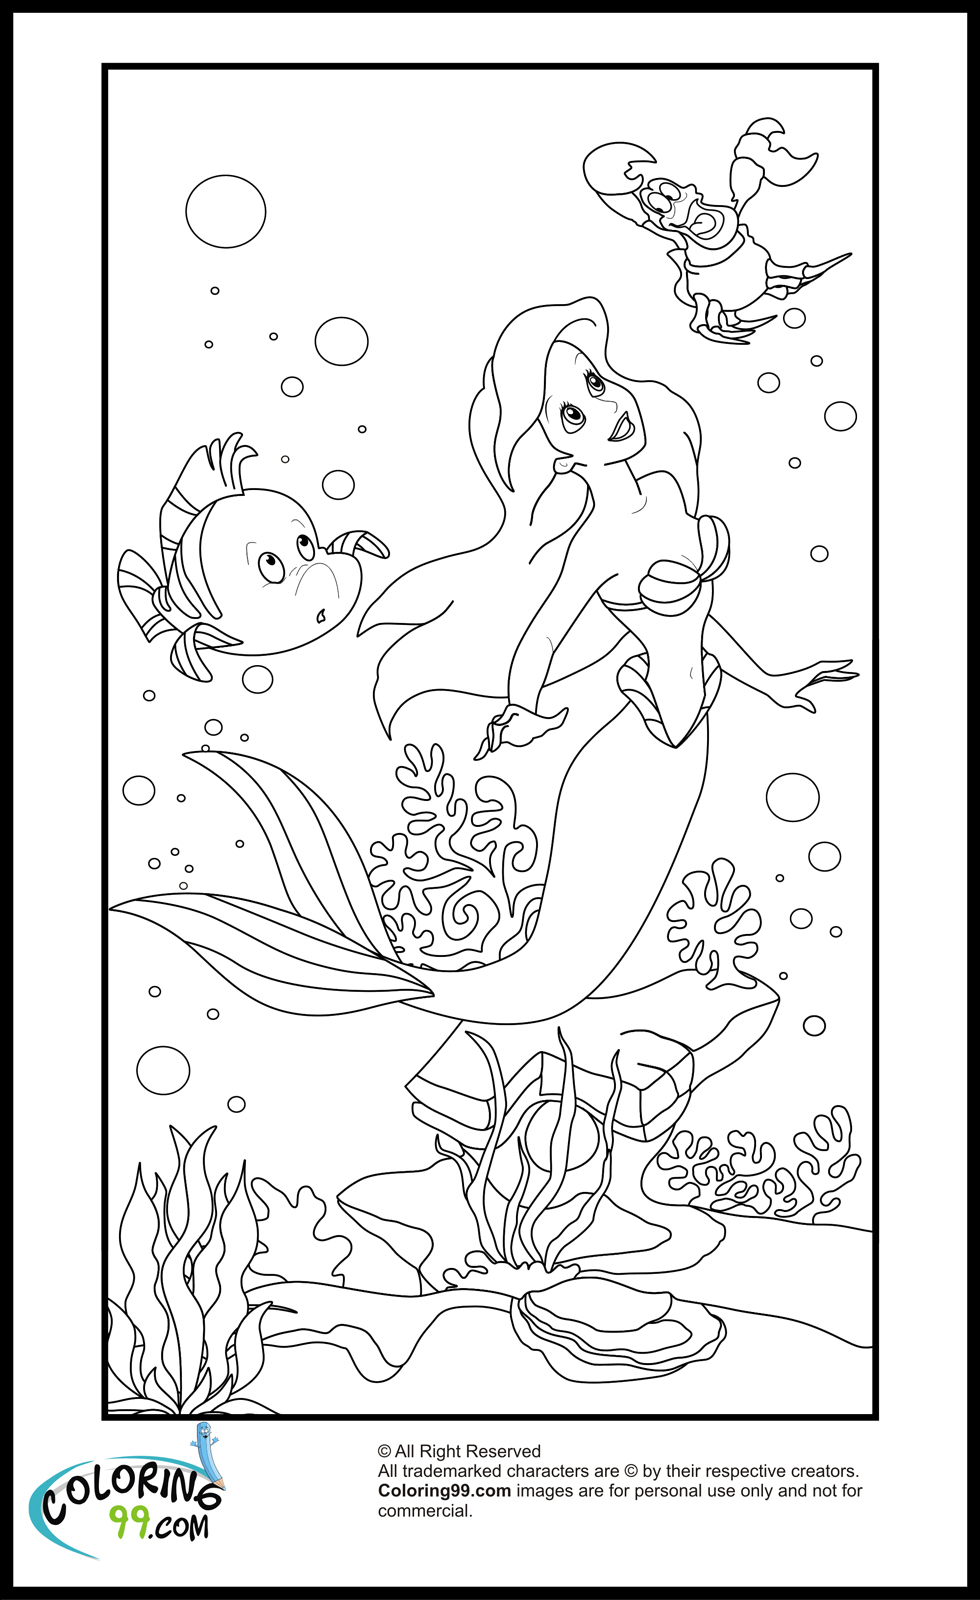 ariel and her sisters coloring pages unite disney september 2016 sisters her pages and ariel coloring